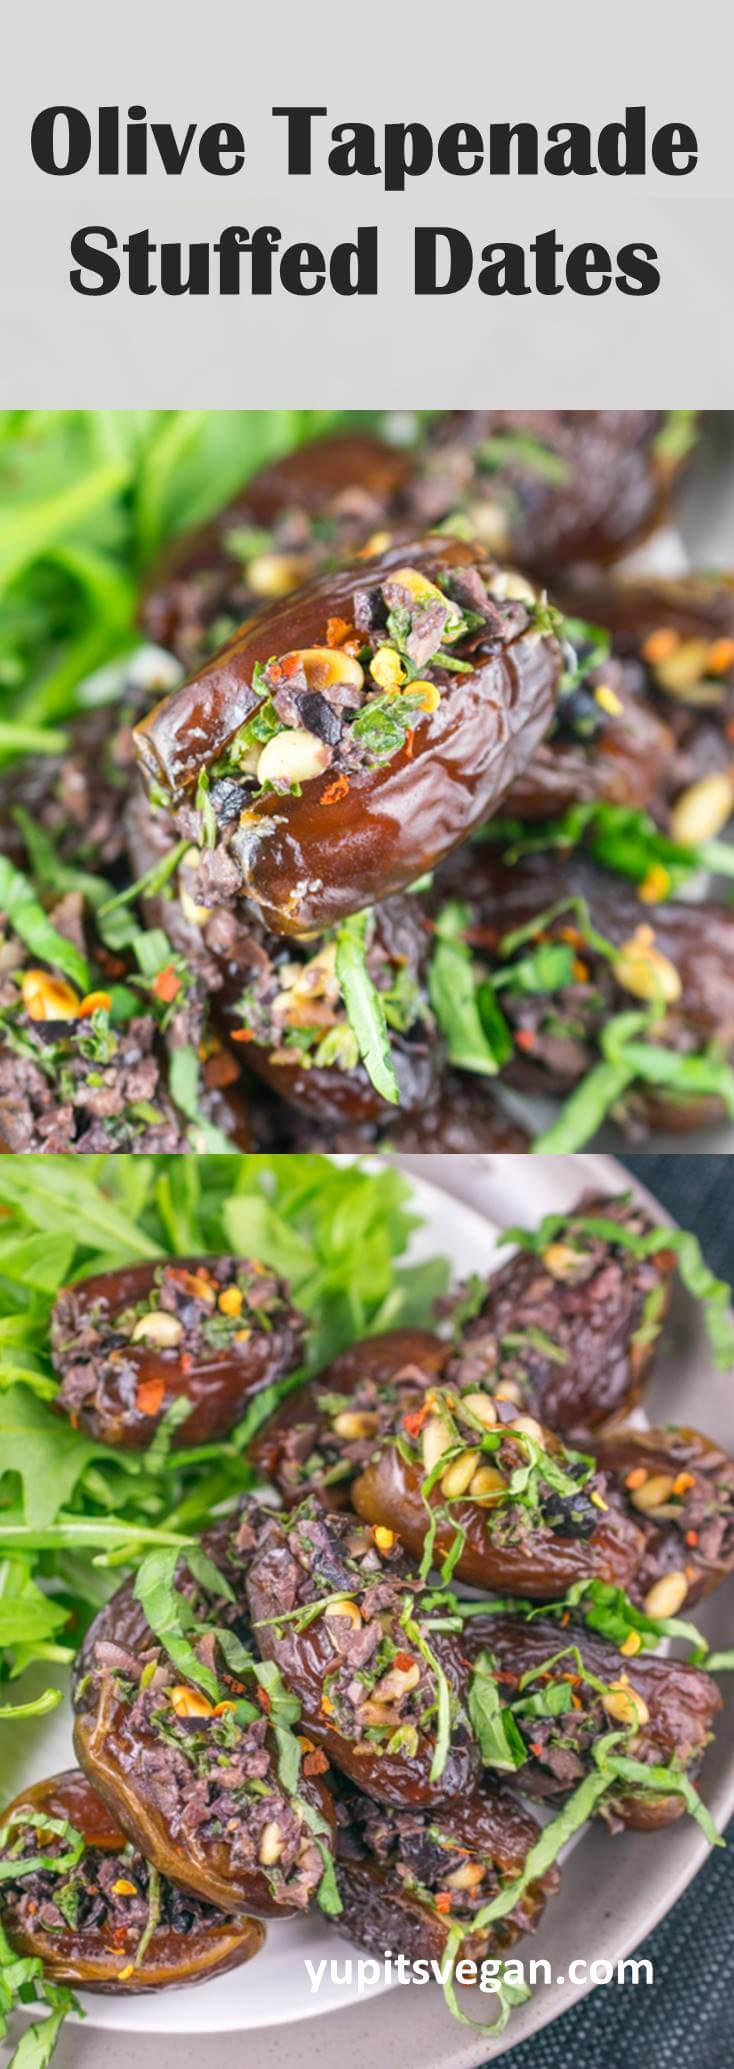 Olive Tapenade Stuffed Dates: Try something different with stuffed dates. No cheese, no bacon, instead they're stuffed with a briny, salty, creamy olive tapenade and toasted pine nuts. Vegan, paleo, gluten-free, dairy-free.